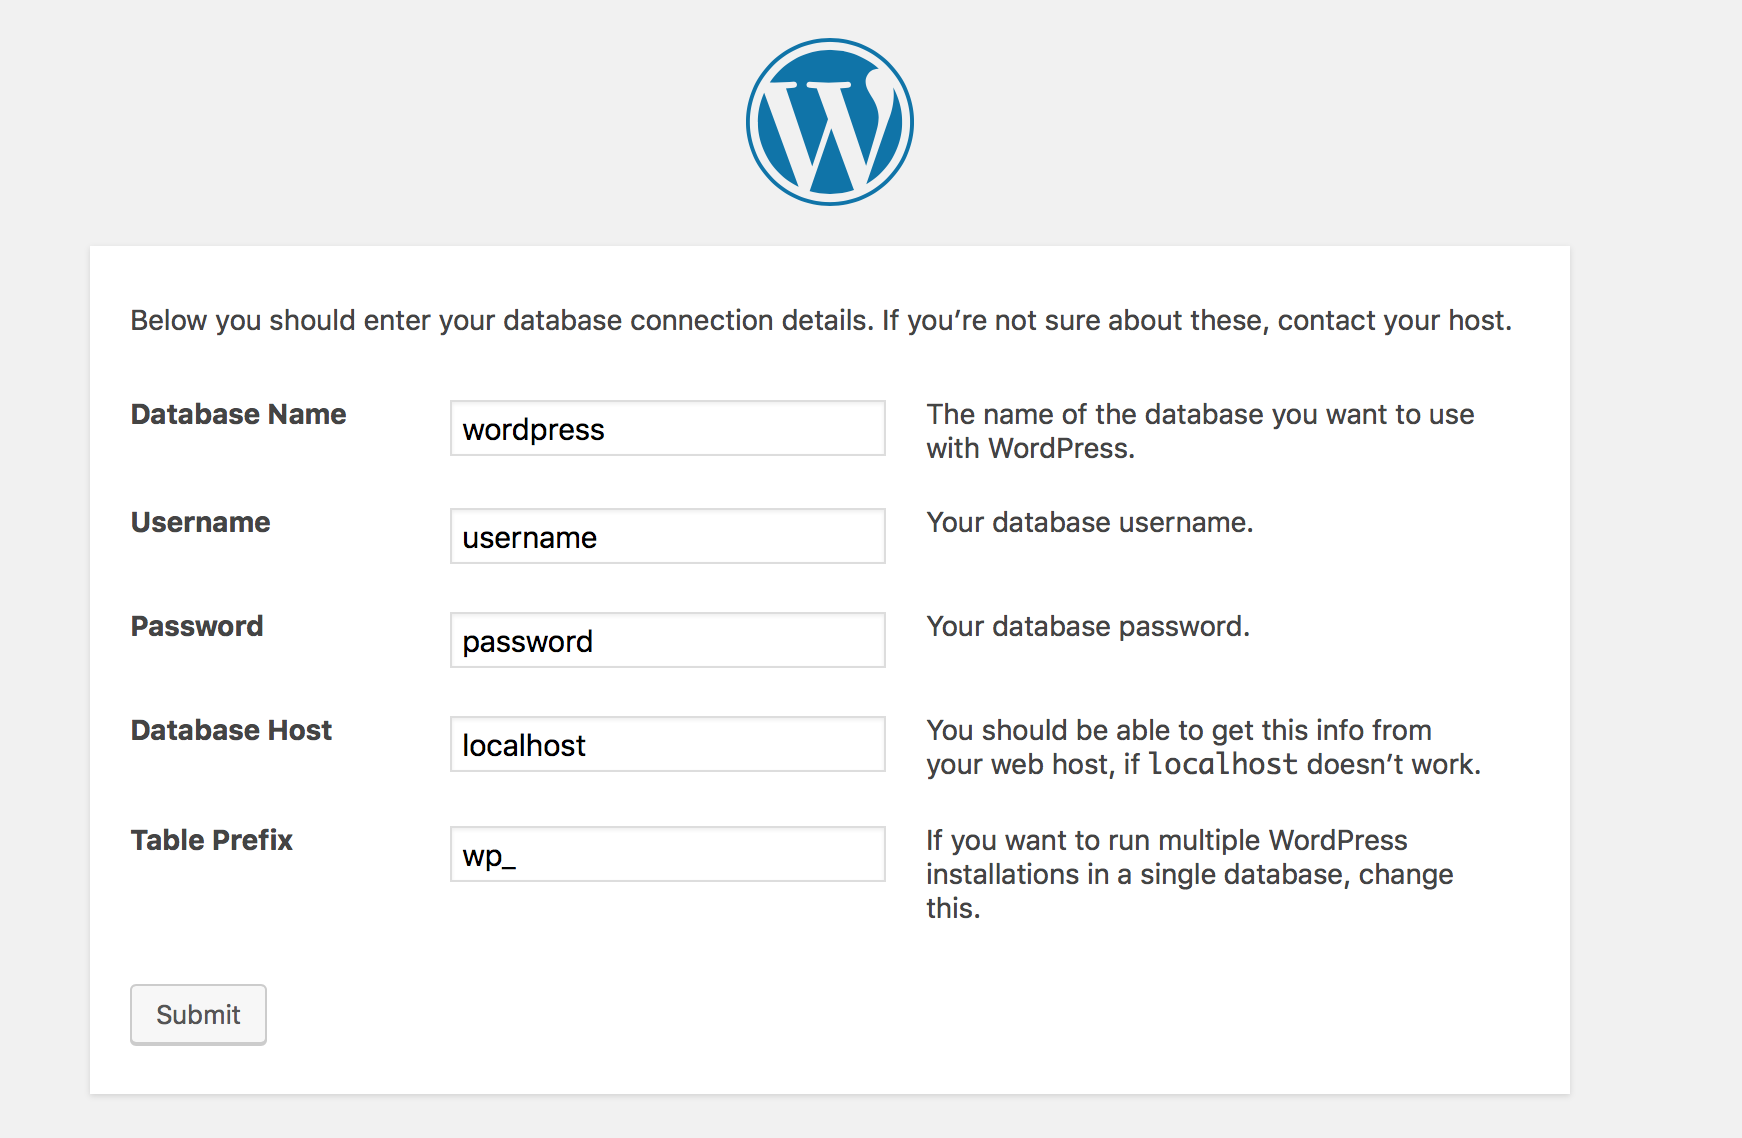 WordPress-Installationsvorgang Datenbank angelegt